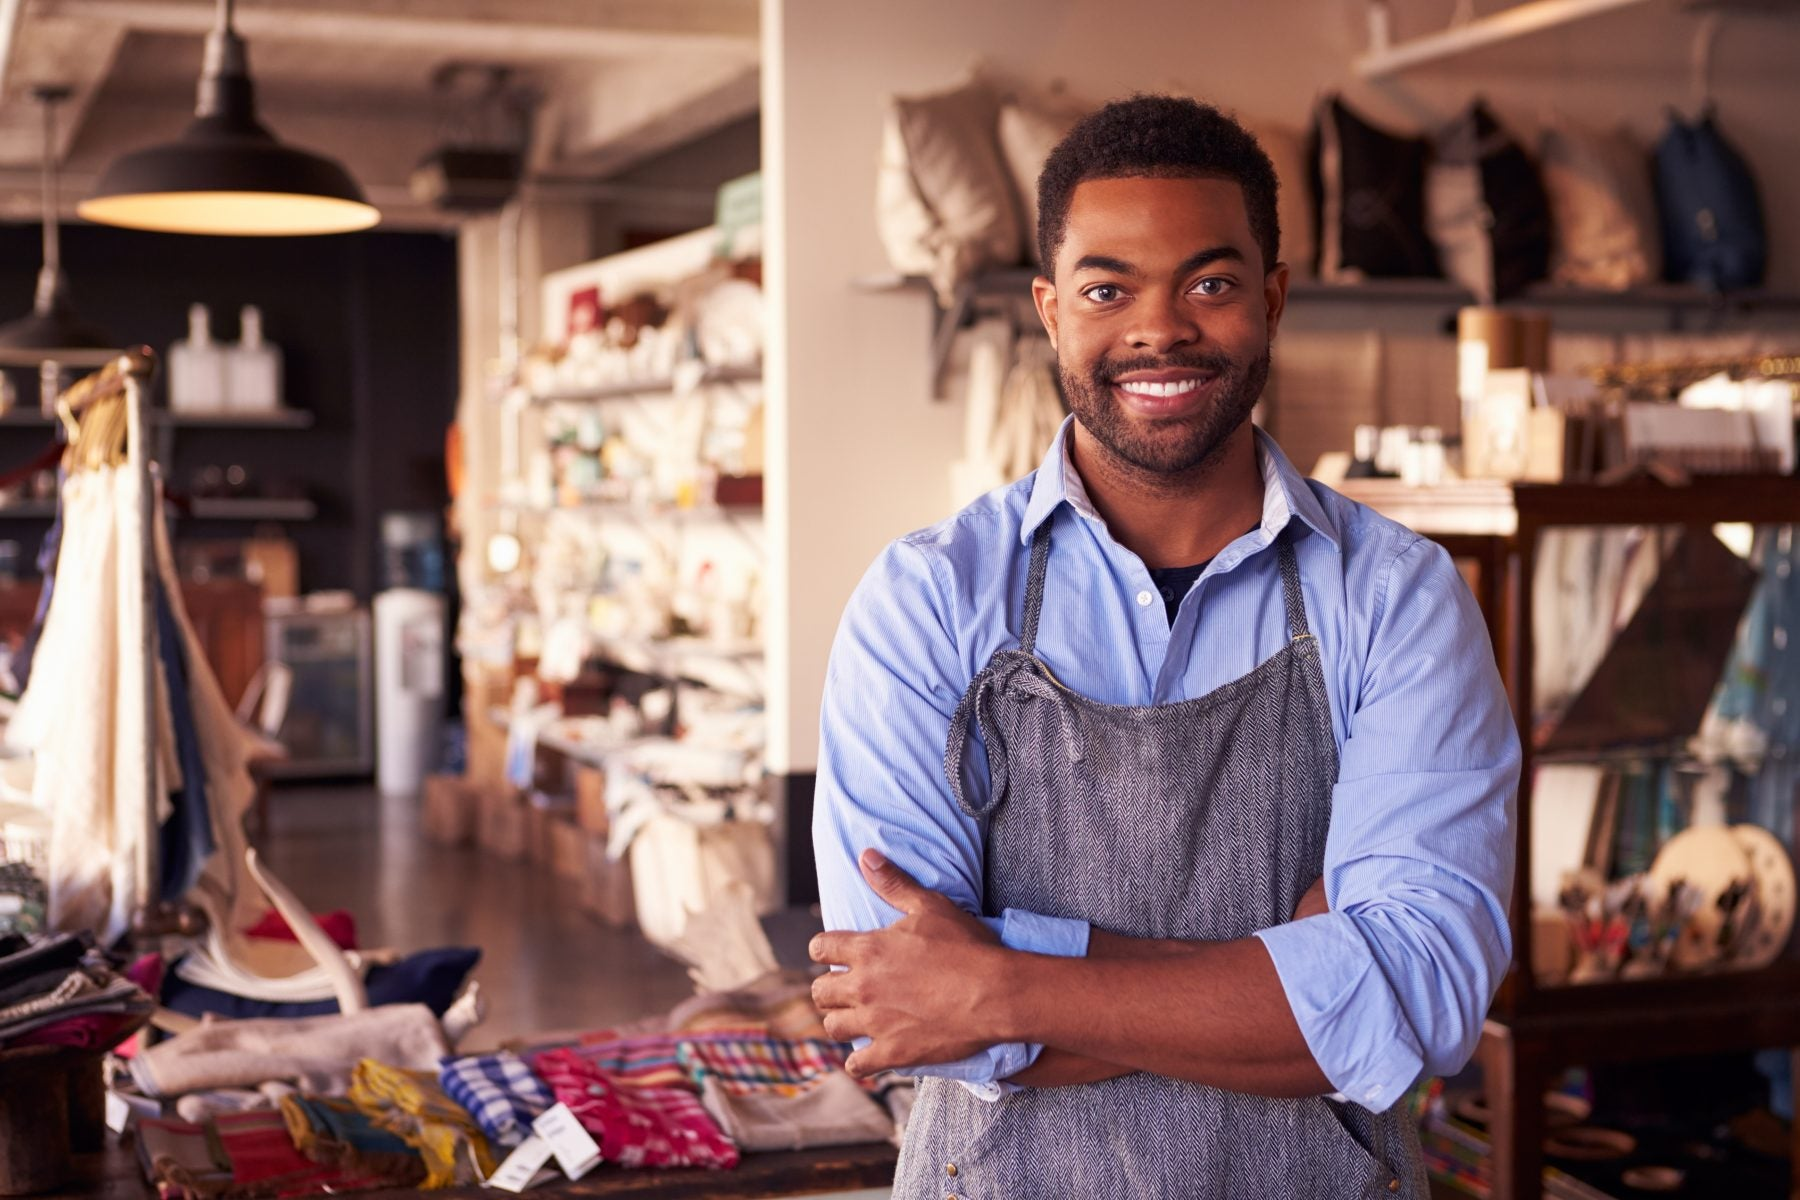 Best 7 small-business tips